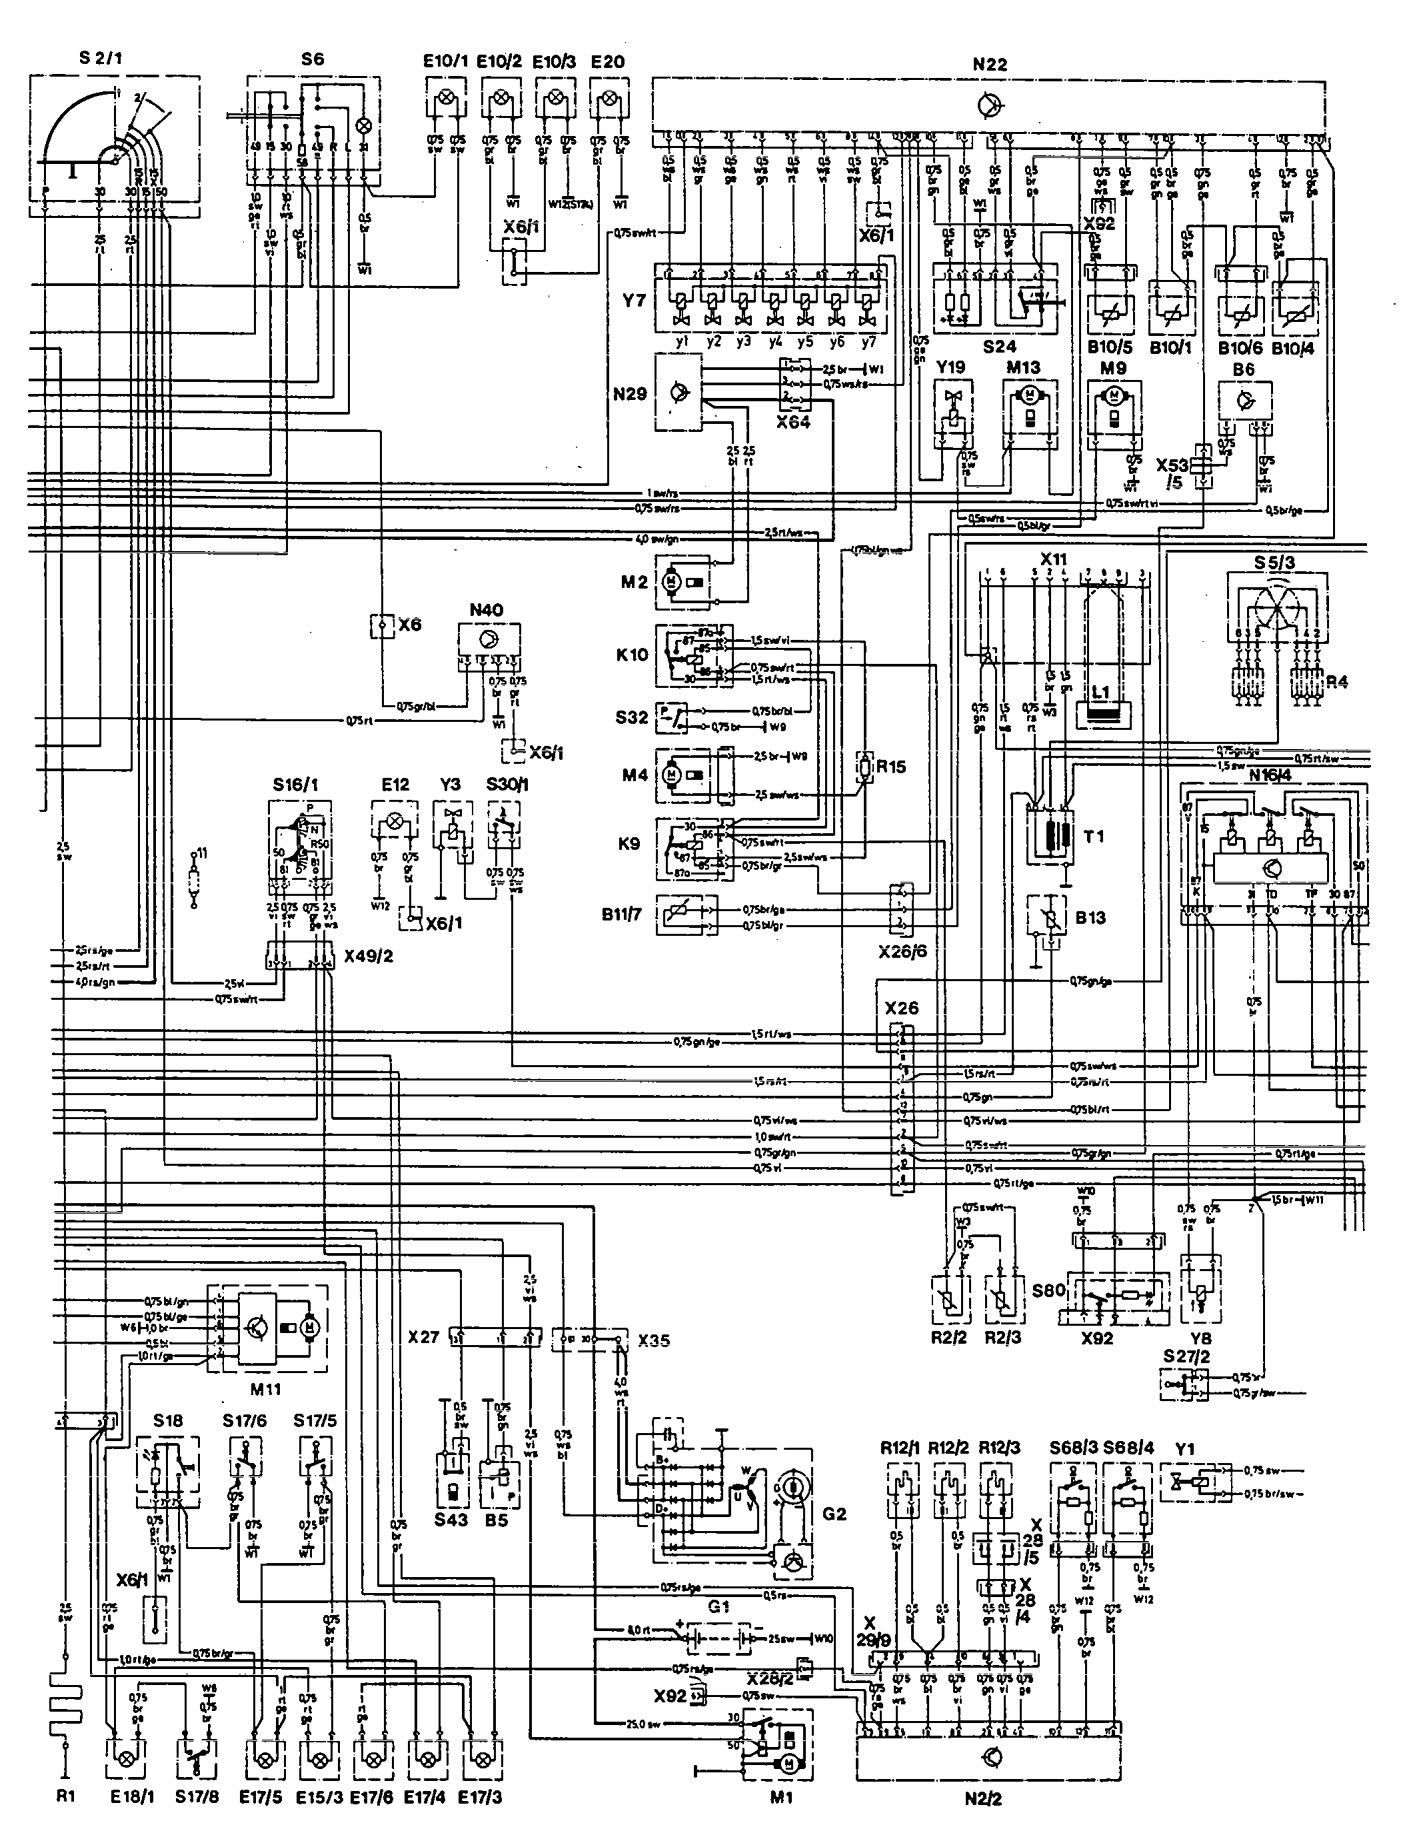 1989 Mercedes 300e Wiring Diagram Free For You Benz E280 1990 Library Rh 11 Mml Partners De 1980